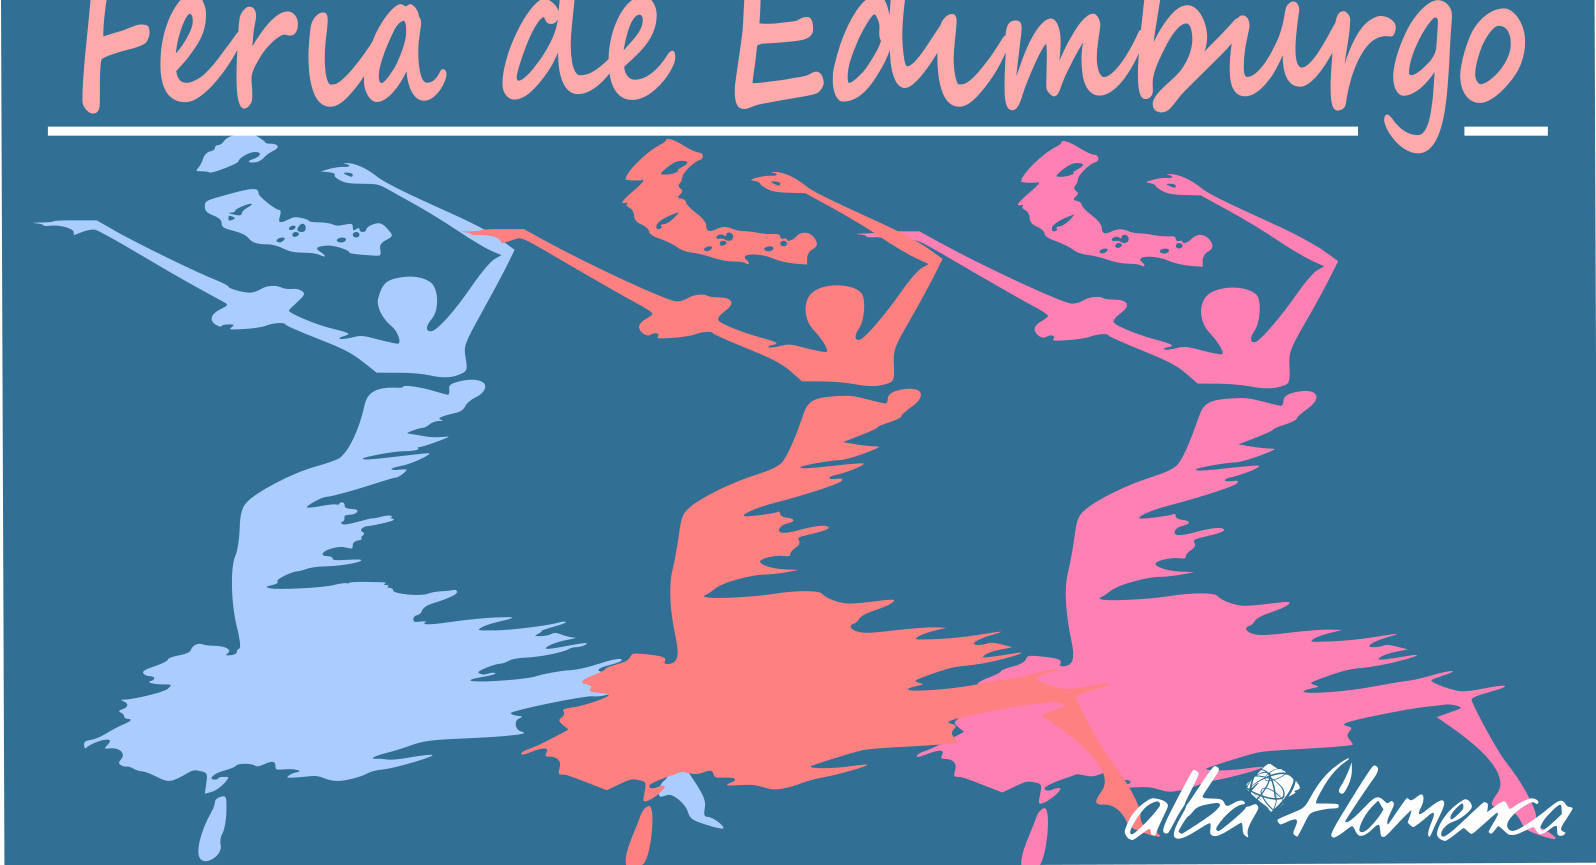 Annual Feria de Edimburgo - great music, live bands, rumbas, raffle and sevillanas...plus tasty Spanish tapas